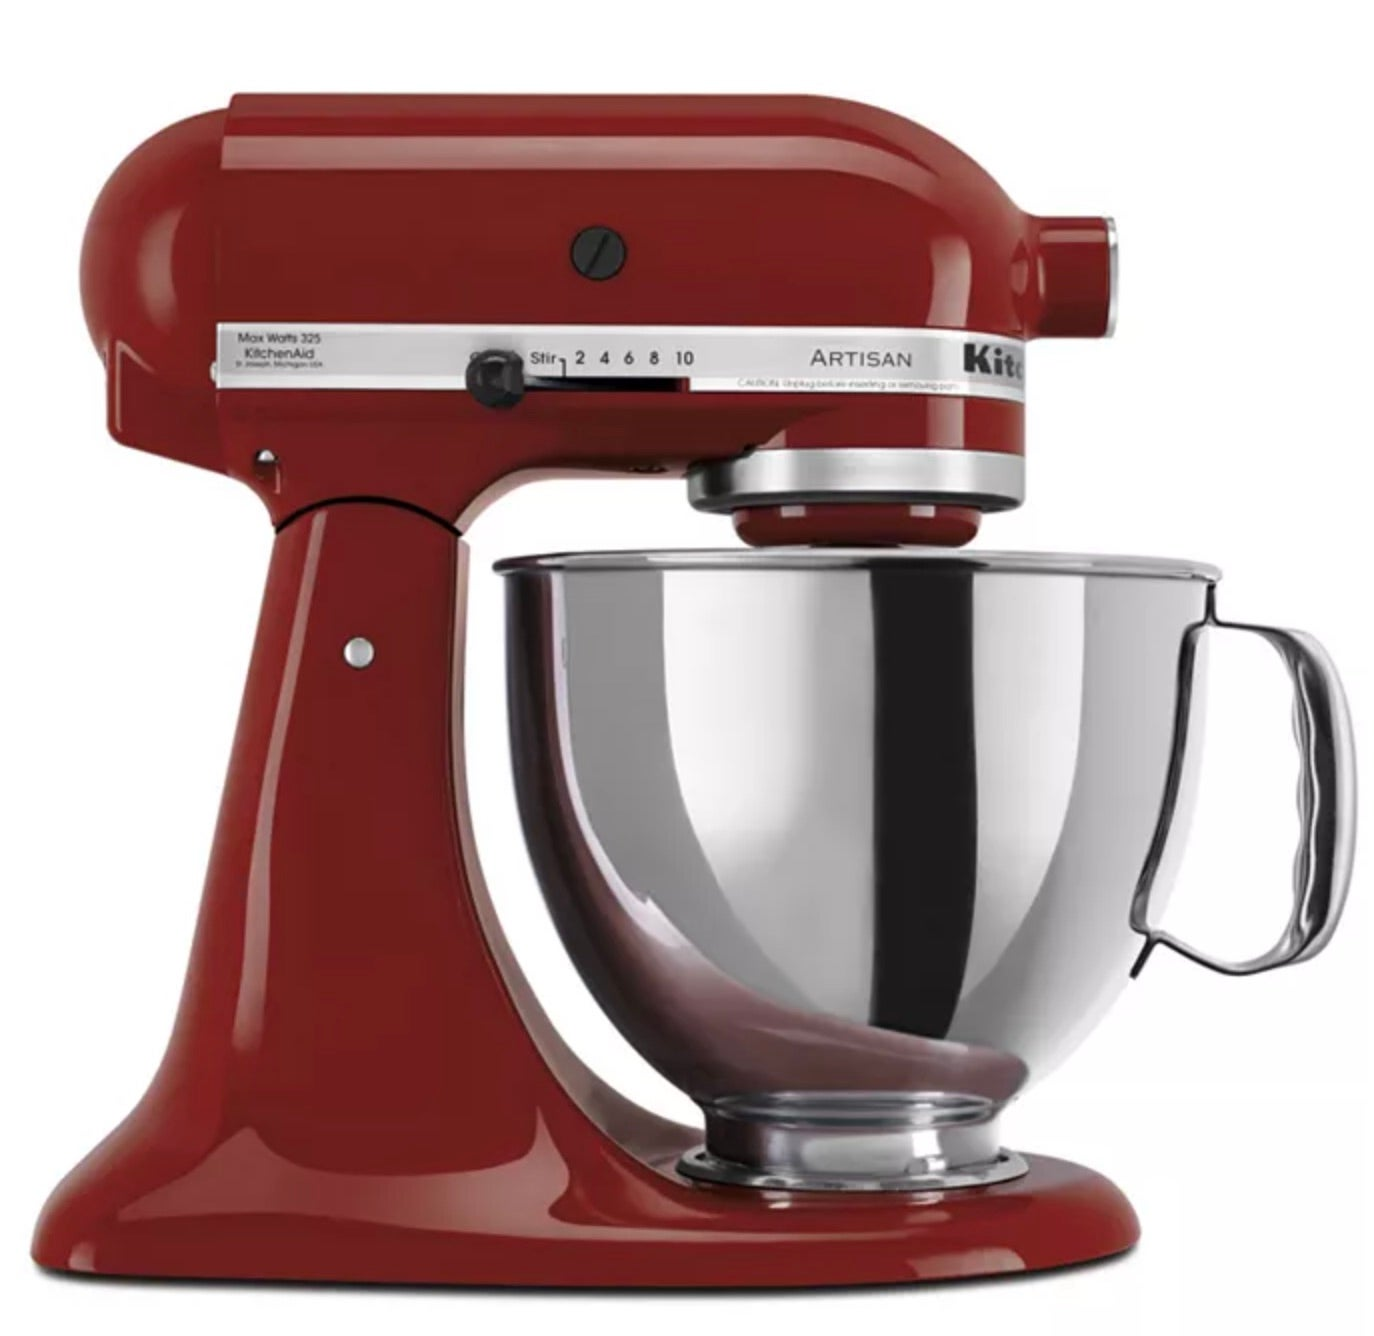 KitchenAid Artisan 5-Quart Tilt Head Stand Mixer with Stainless Steel Bowl